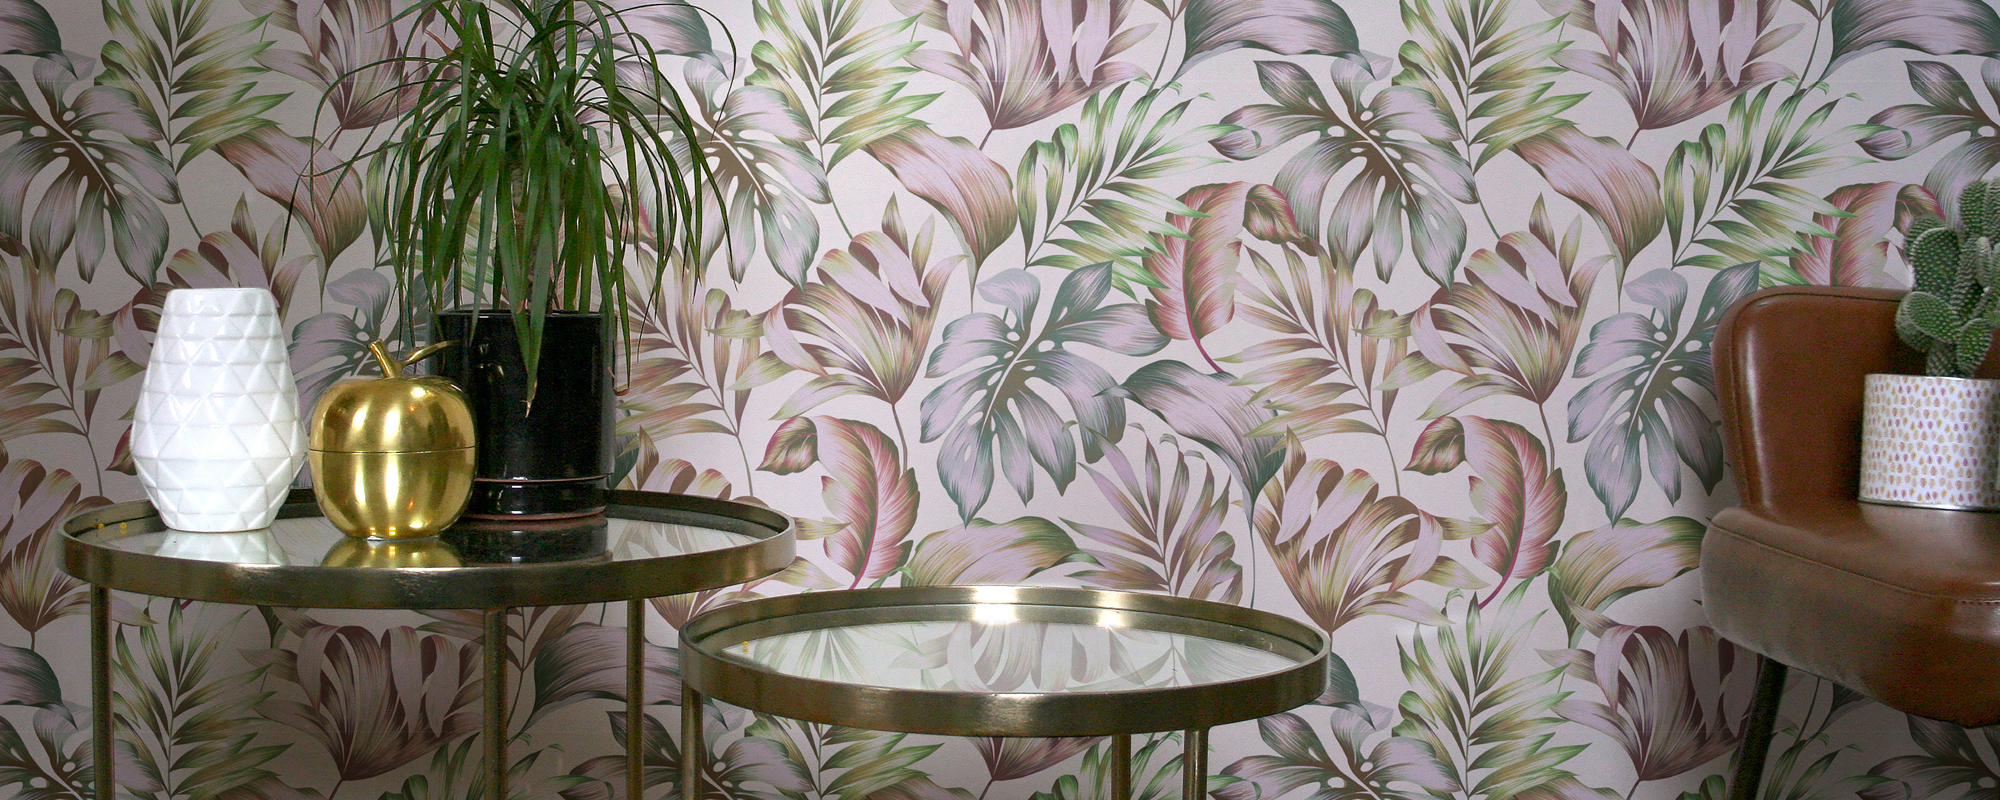 Papier peint design tropical fond clair